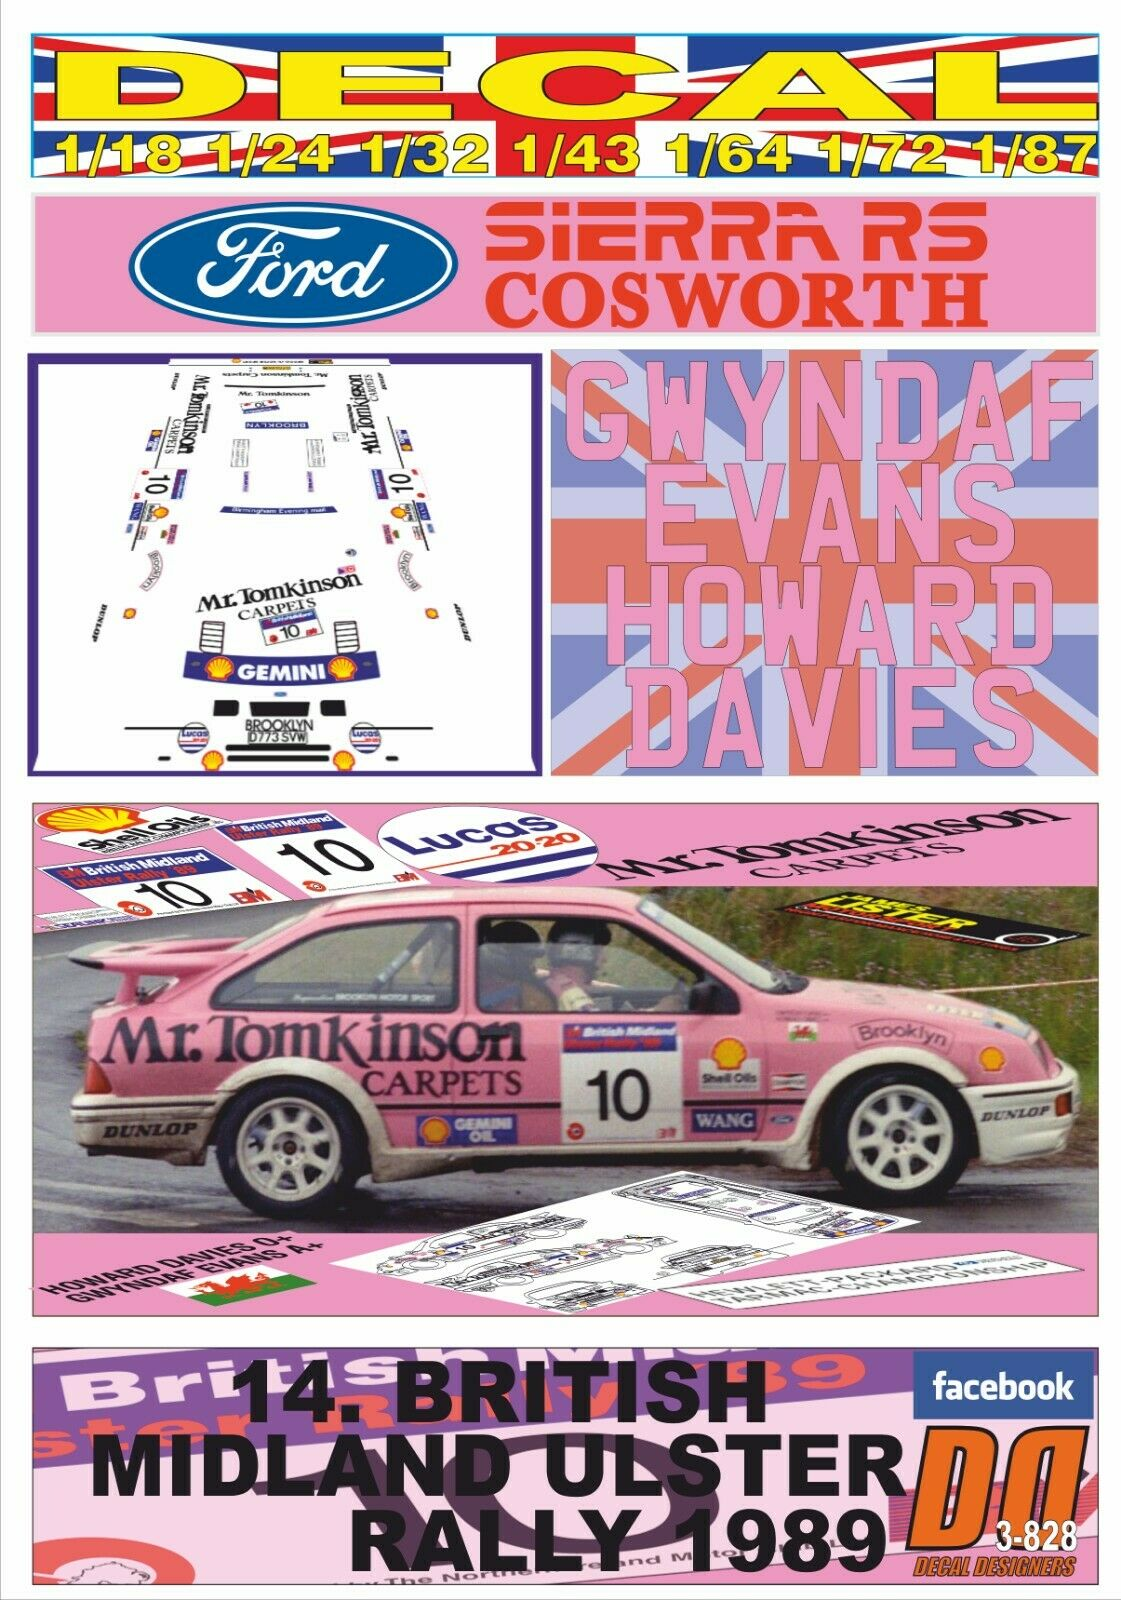 DECAL FORD SIERRA RS COSWORTH G.EVANS ULSTER R. 1989 WINNER (06)